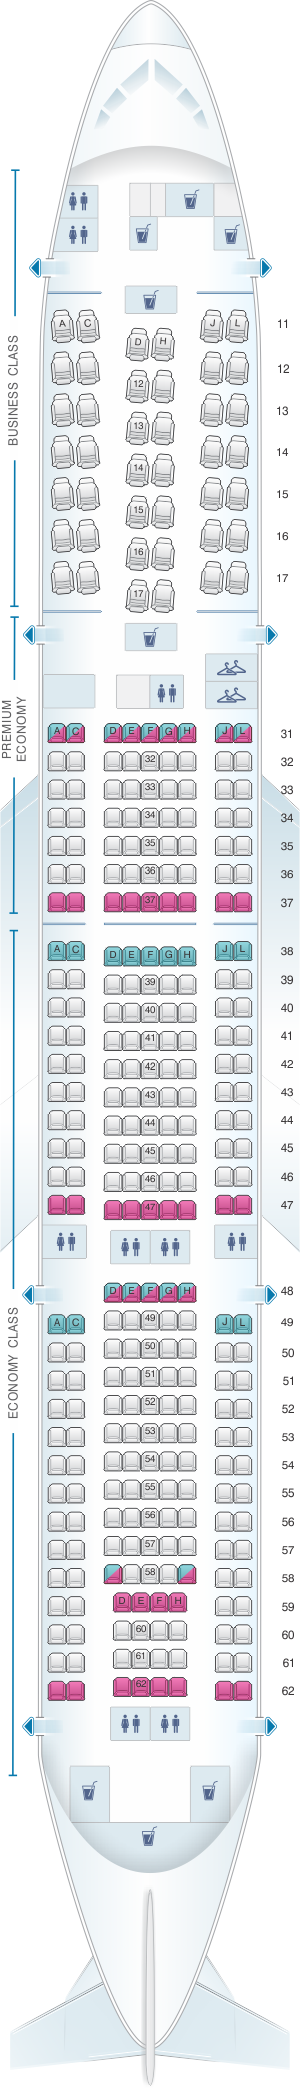 Seat map for Air China Boeing B777 200 (310PAX)